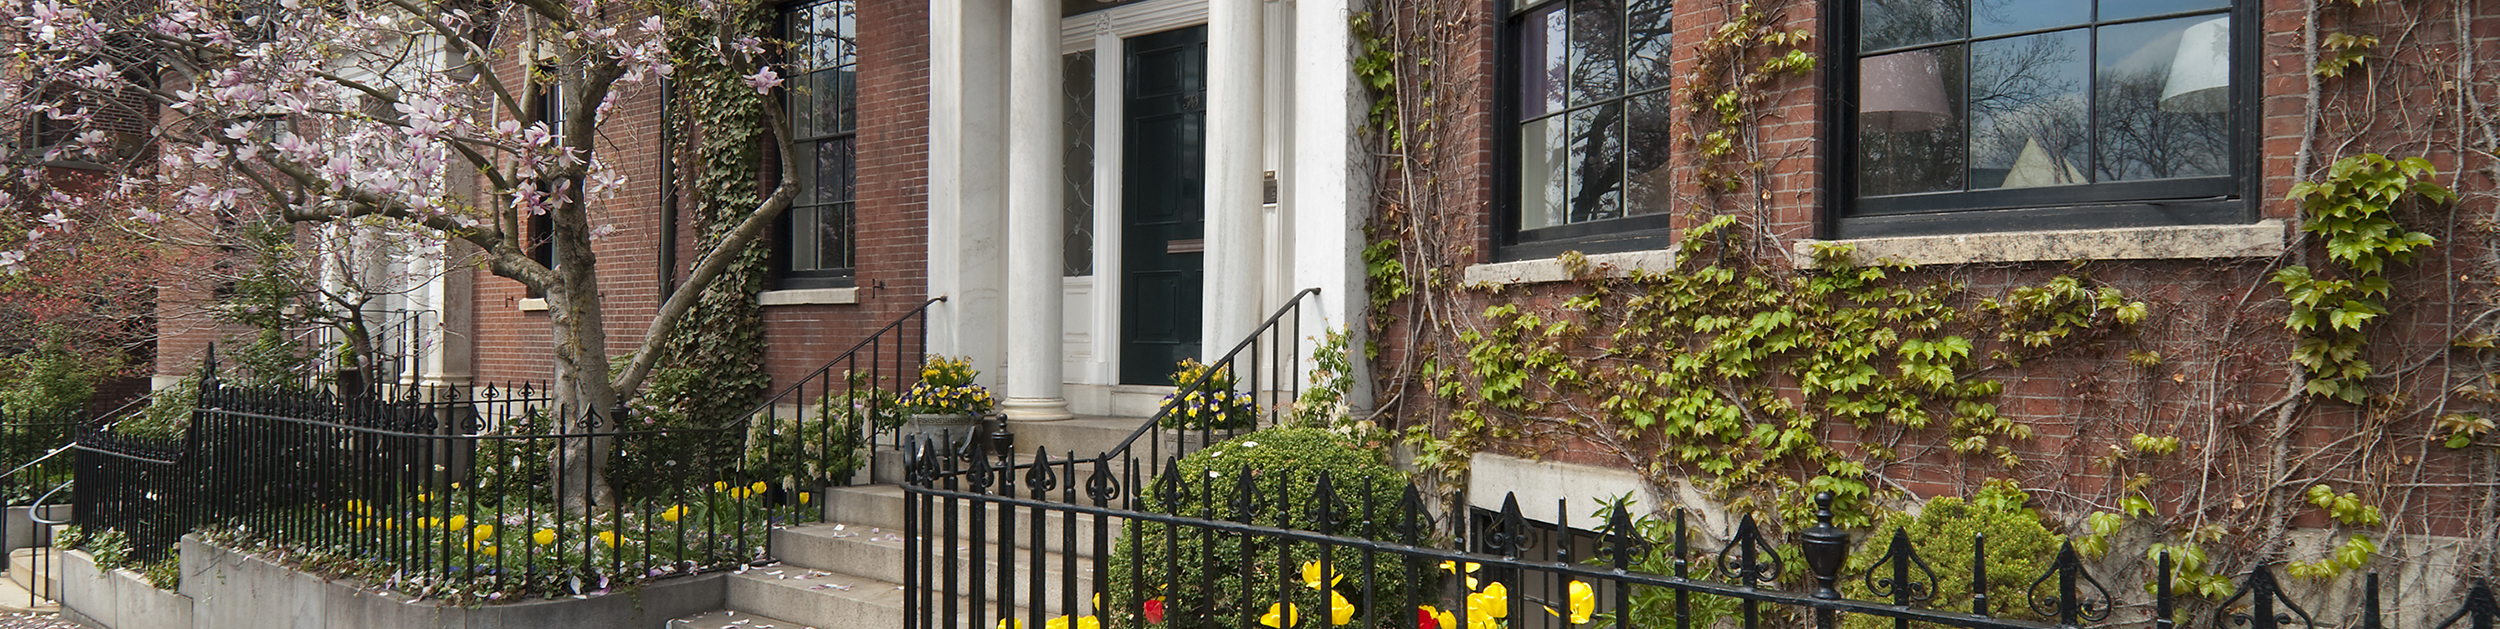 grand entranceway to residential building in Boston MA with rod iron fencing